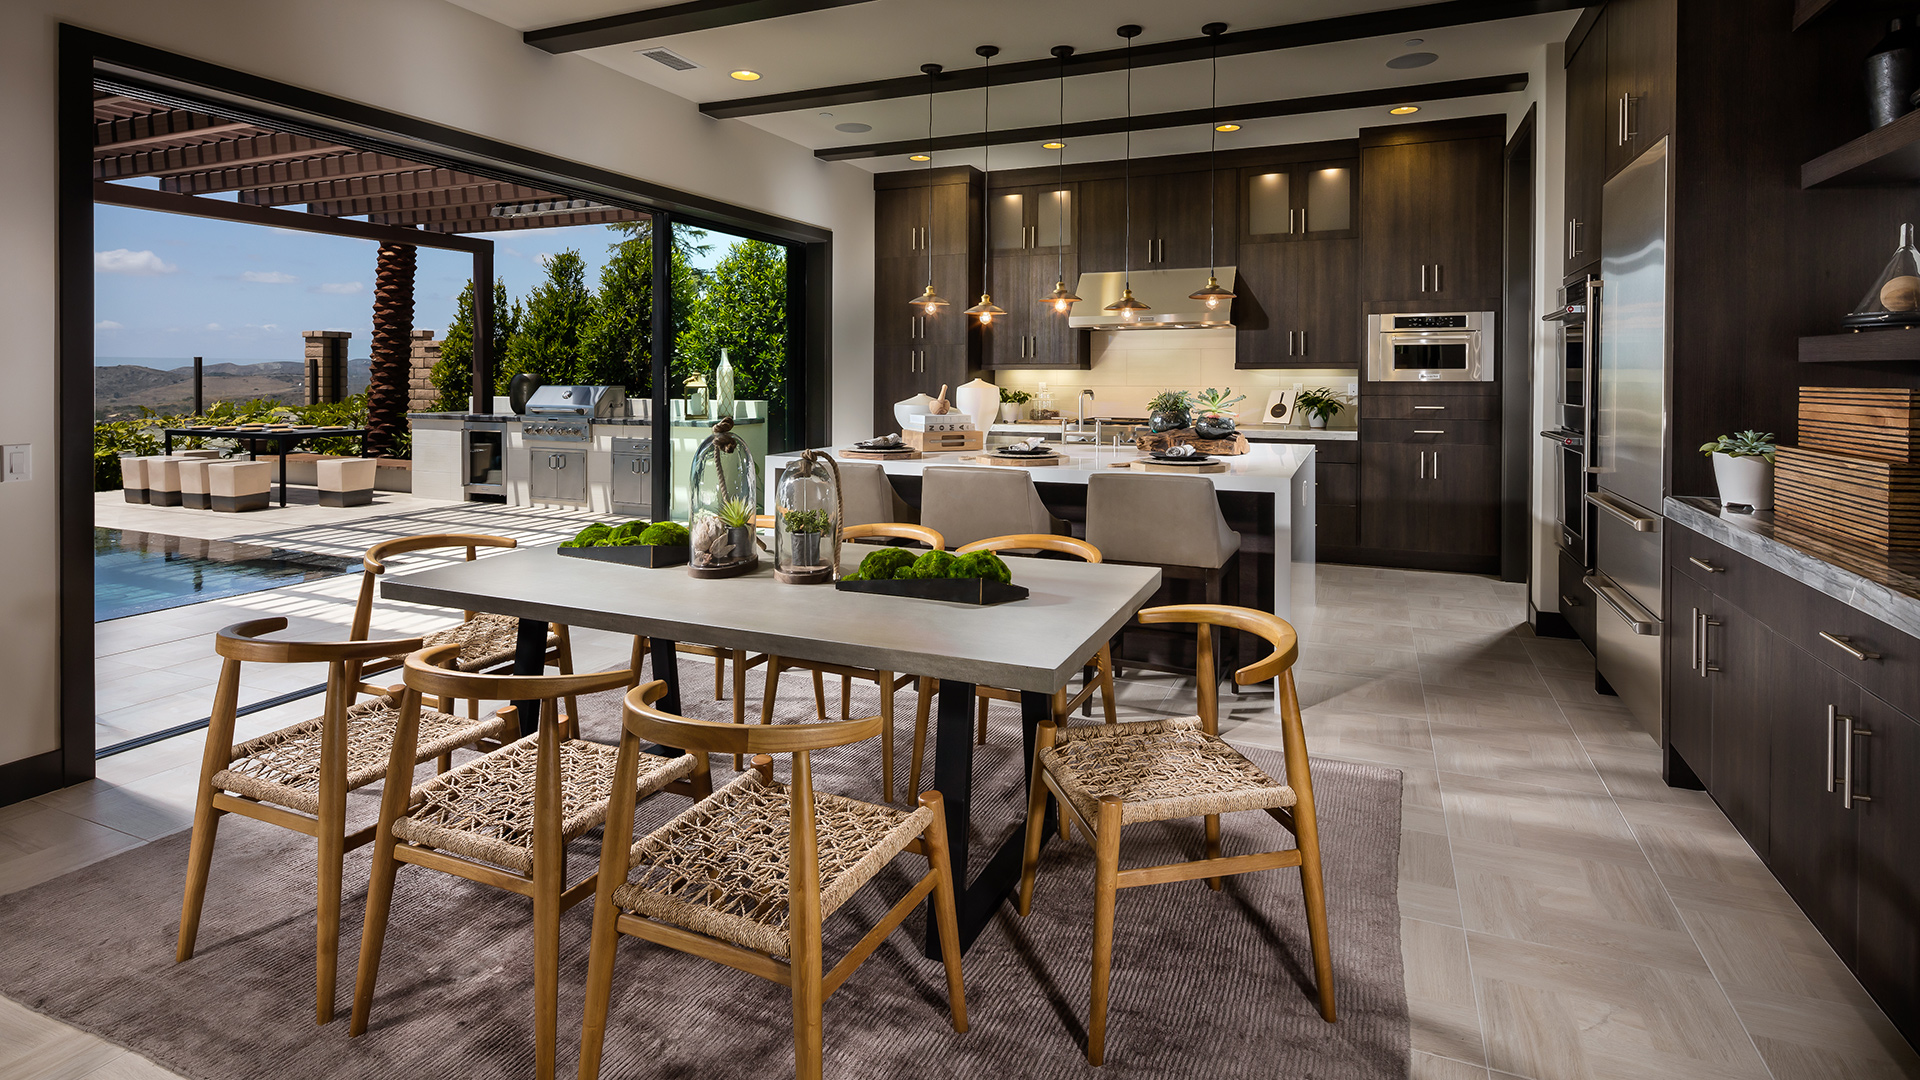 Desirable open layouts that are great for entertaining.